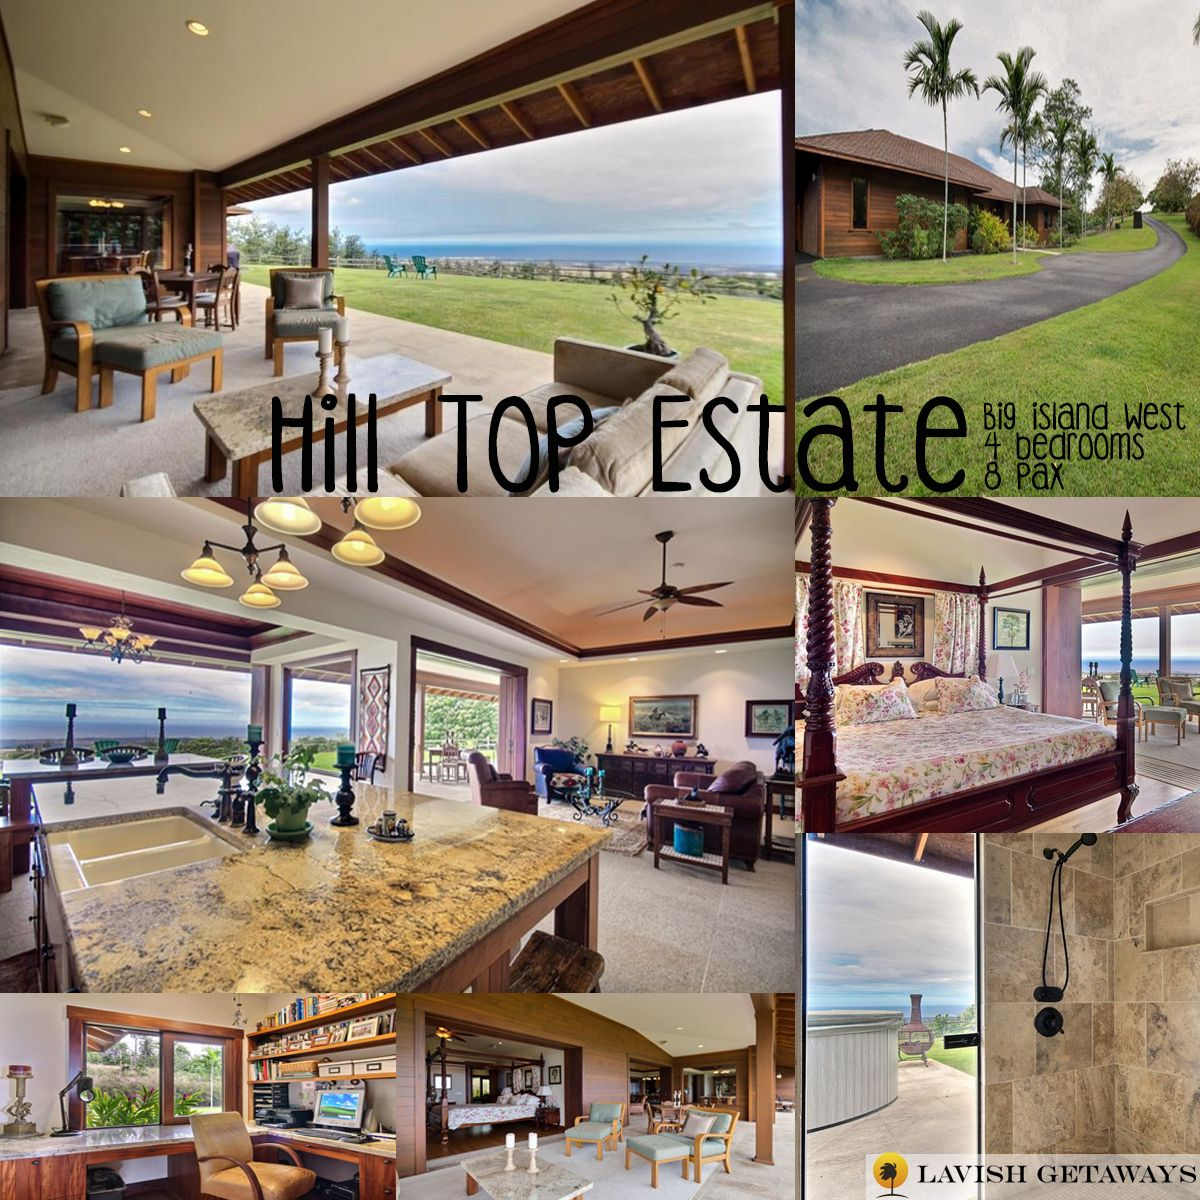 The Hilltop Estate is the perfect destination to relax and enjoy amazing ocean views. The home has an open floor plan, enough for you to relax in green pastures, and the ocean scenery. Enjoy this property on your next vacation! Call 888-799-6920 or email us at Stay@lavishgetaways.com #LavishGetaways #Hawaii #BigIsland #Hawaiistagram #HawaiiLife #VentureHawaii #HawaiiInei #LiveAloha #LuckyWeLiveHawaii #HawaiiBound #Travel #TravelGram #BeachLife #Paradise #Vacation